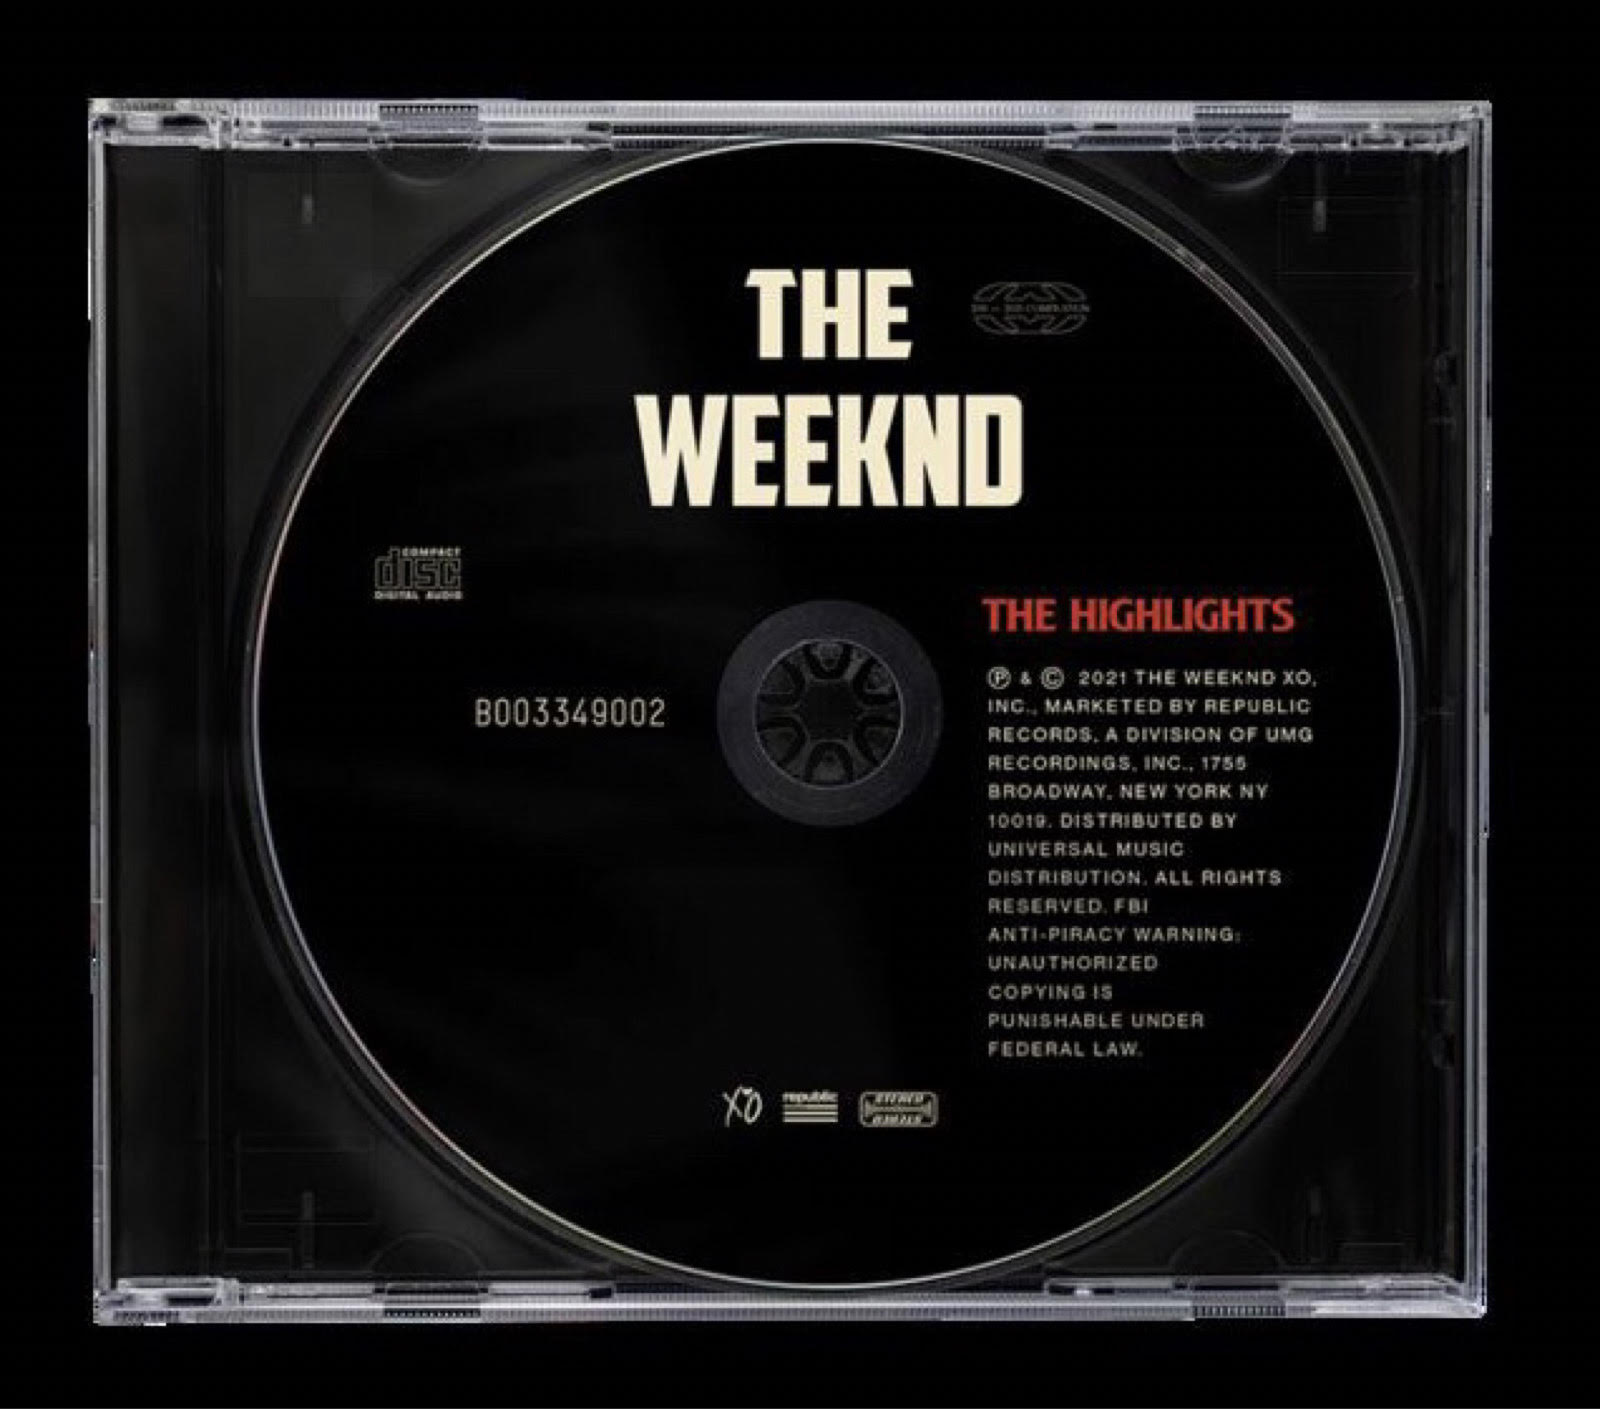 The Weeknd The Highlights Zip Download